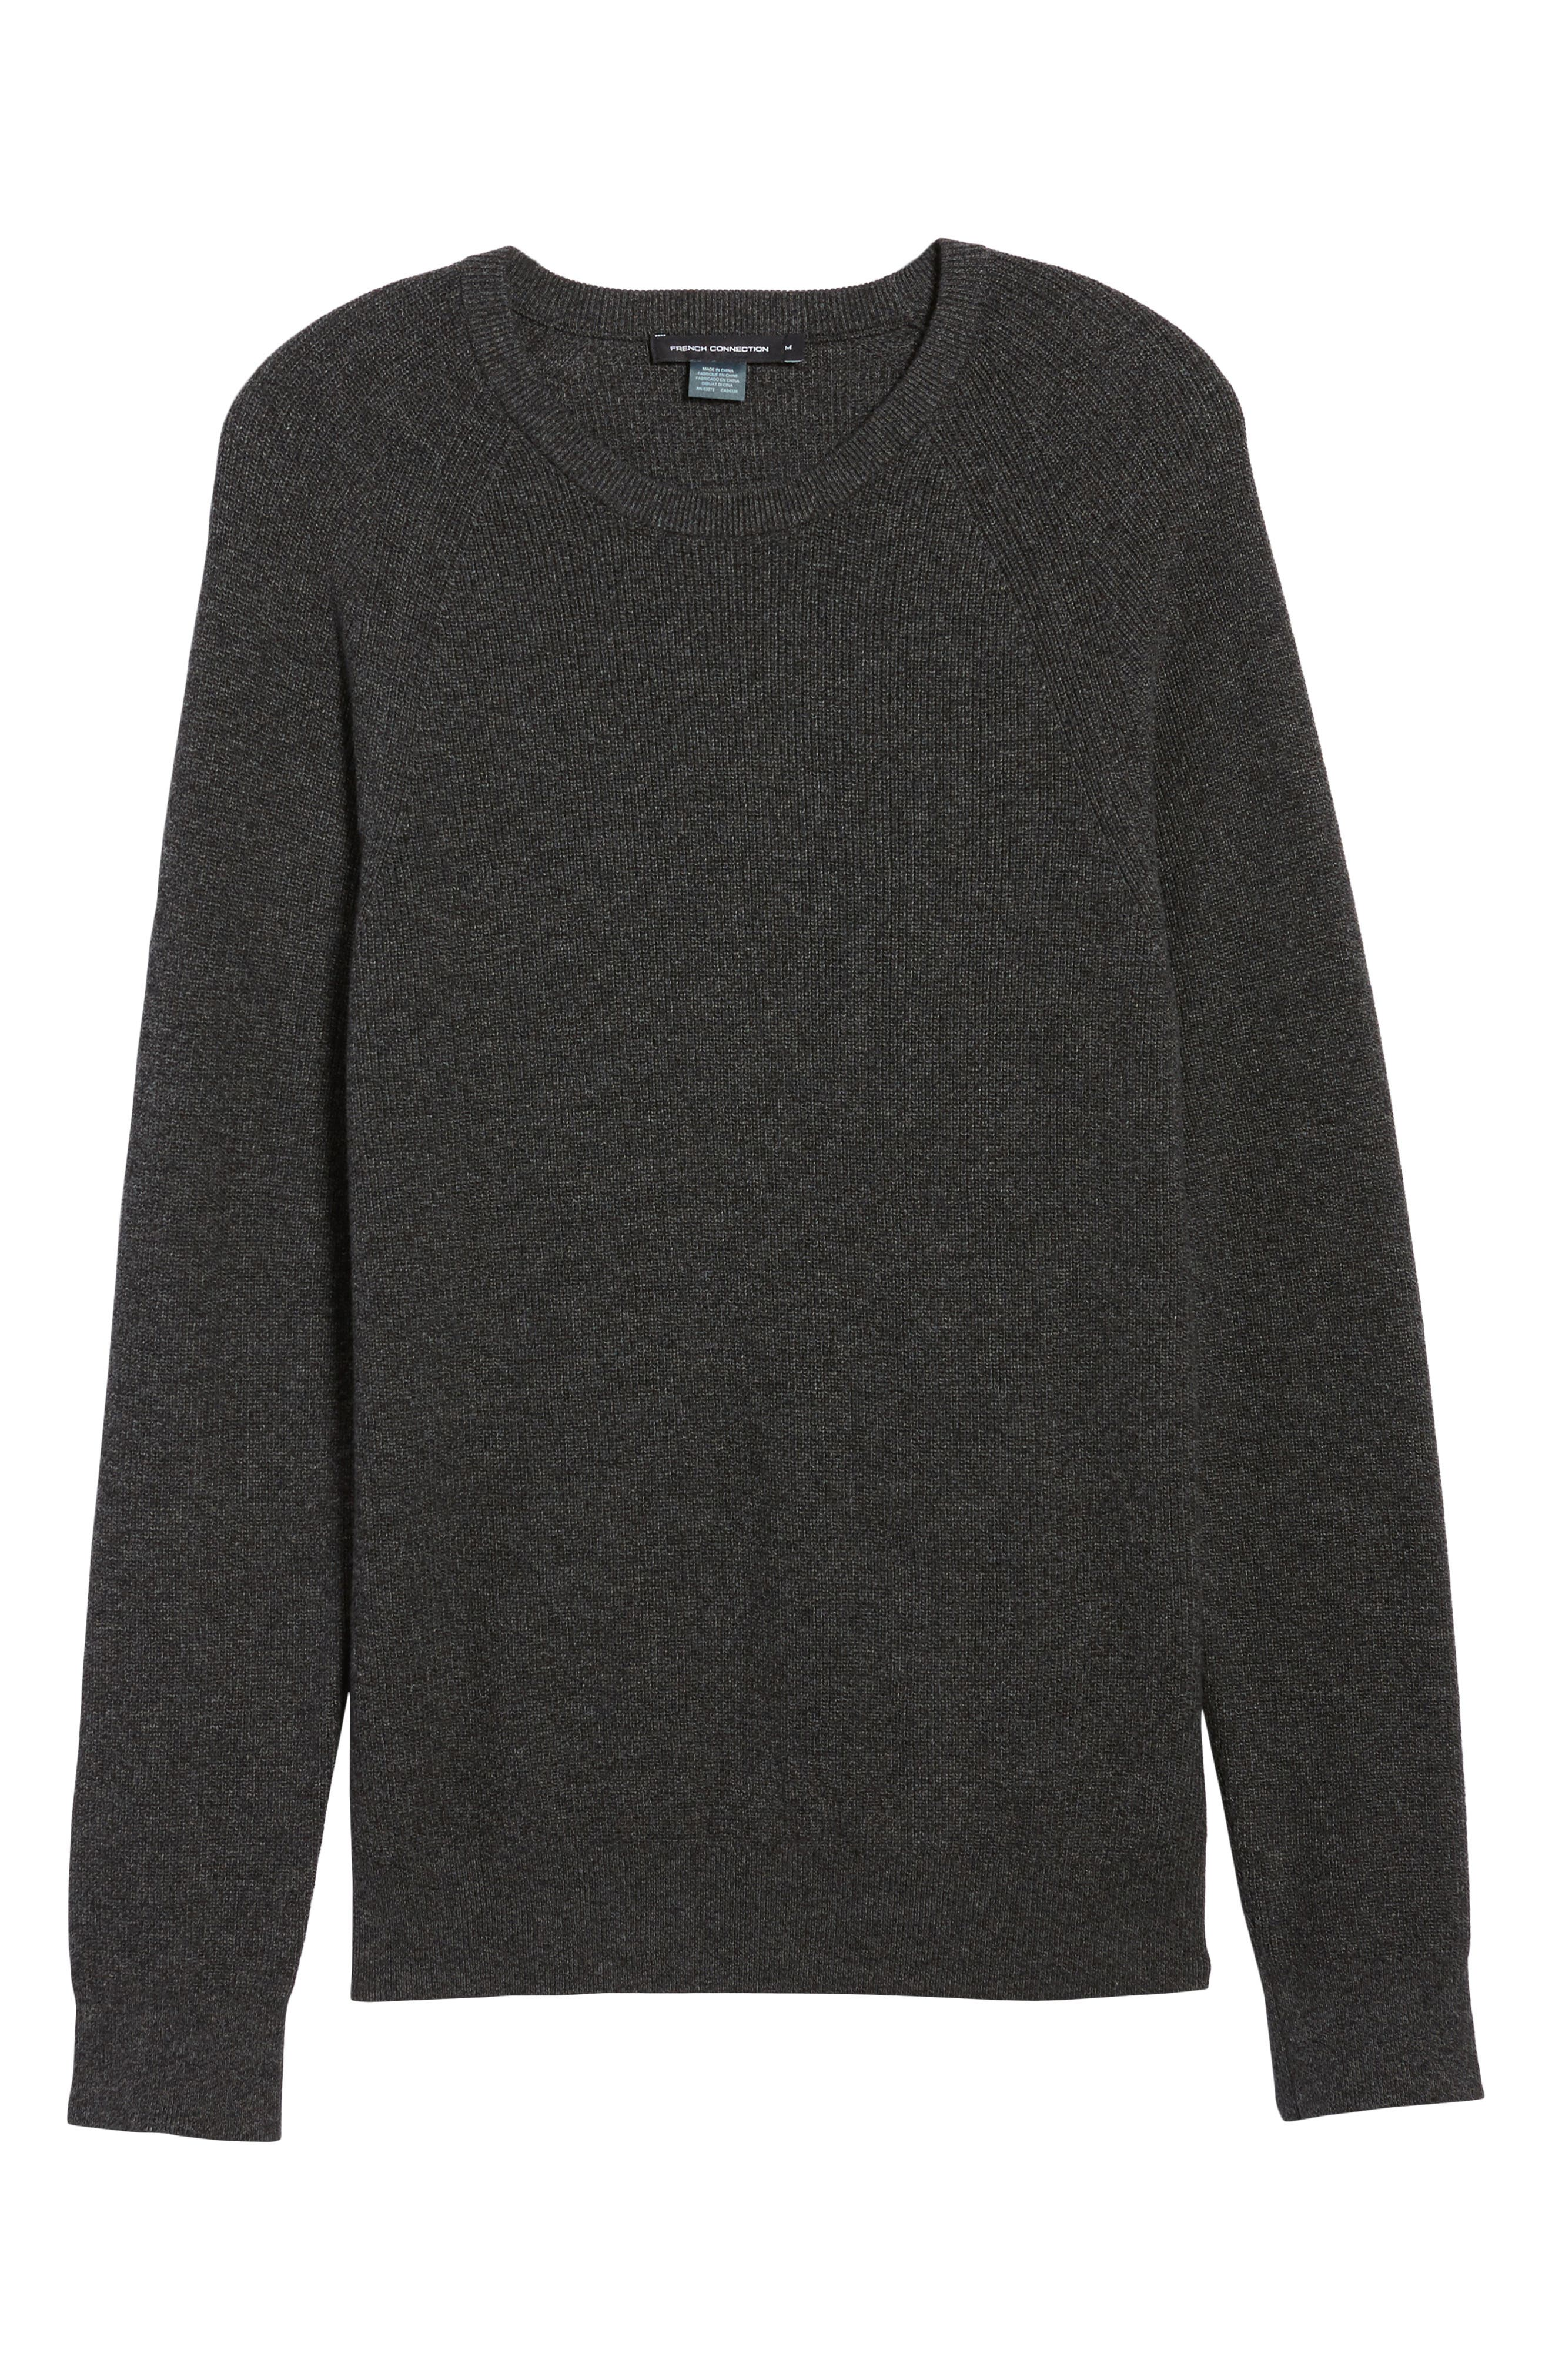 Ribbed Crewneck Sweater,                             Alternate thumbnail 6, color,                             014